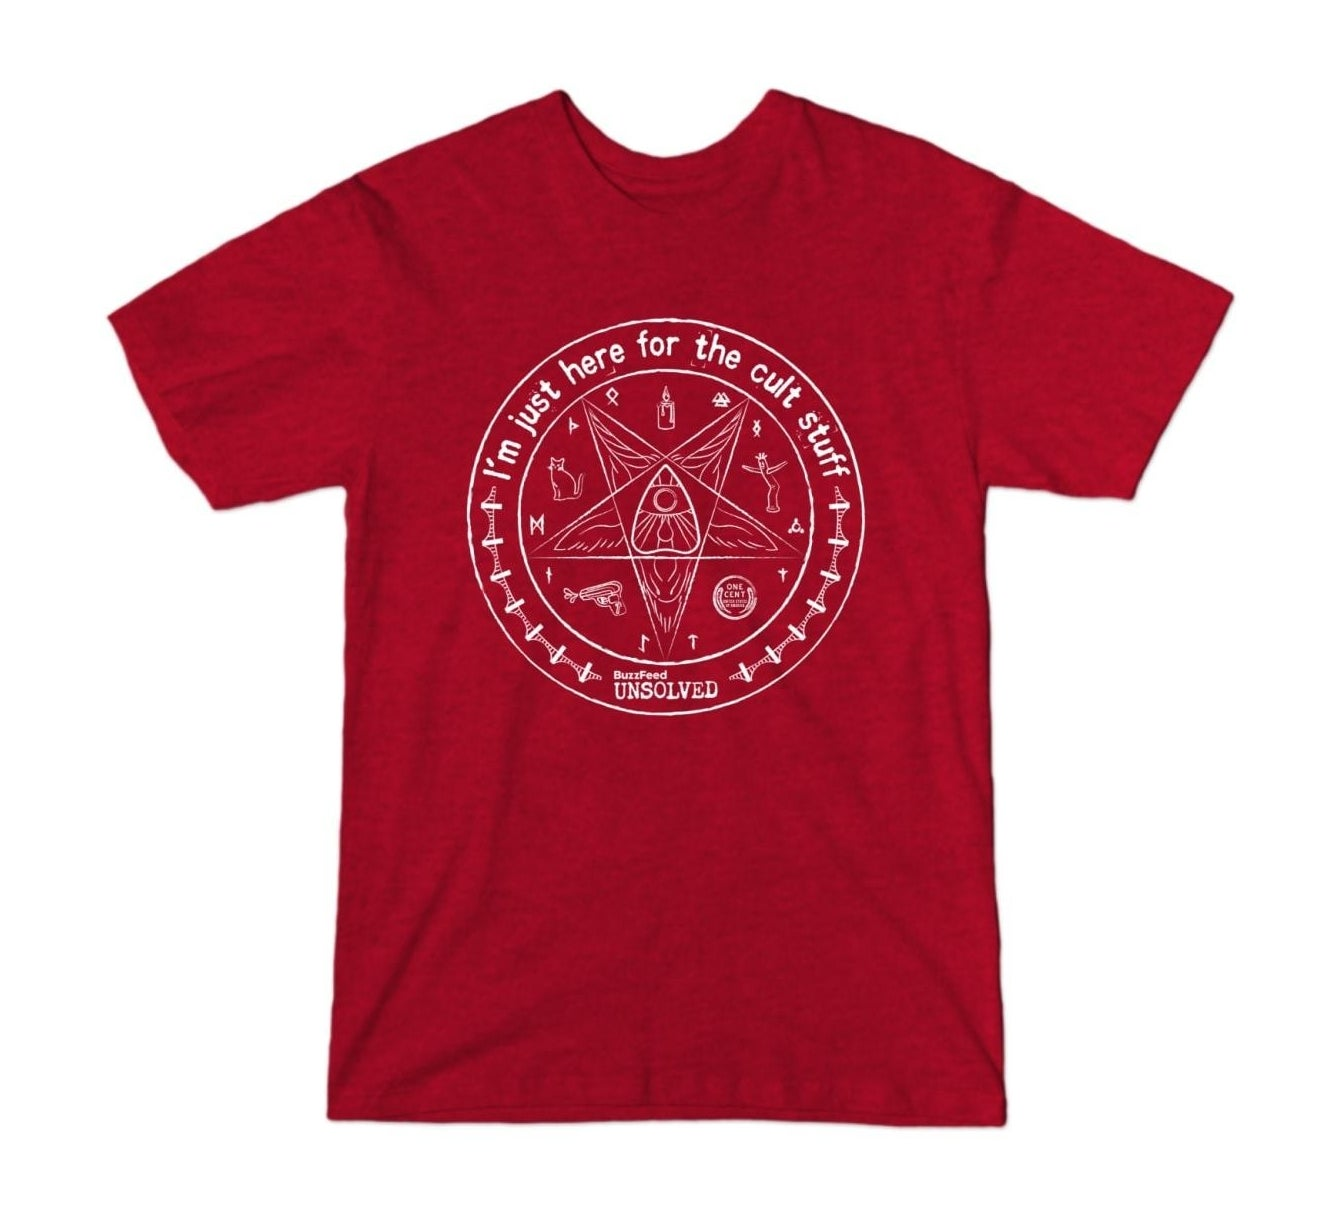 the red heather buzzfeed unsolved cult stuff t-shirt